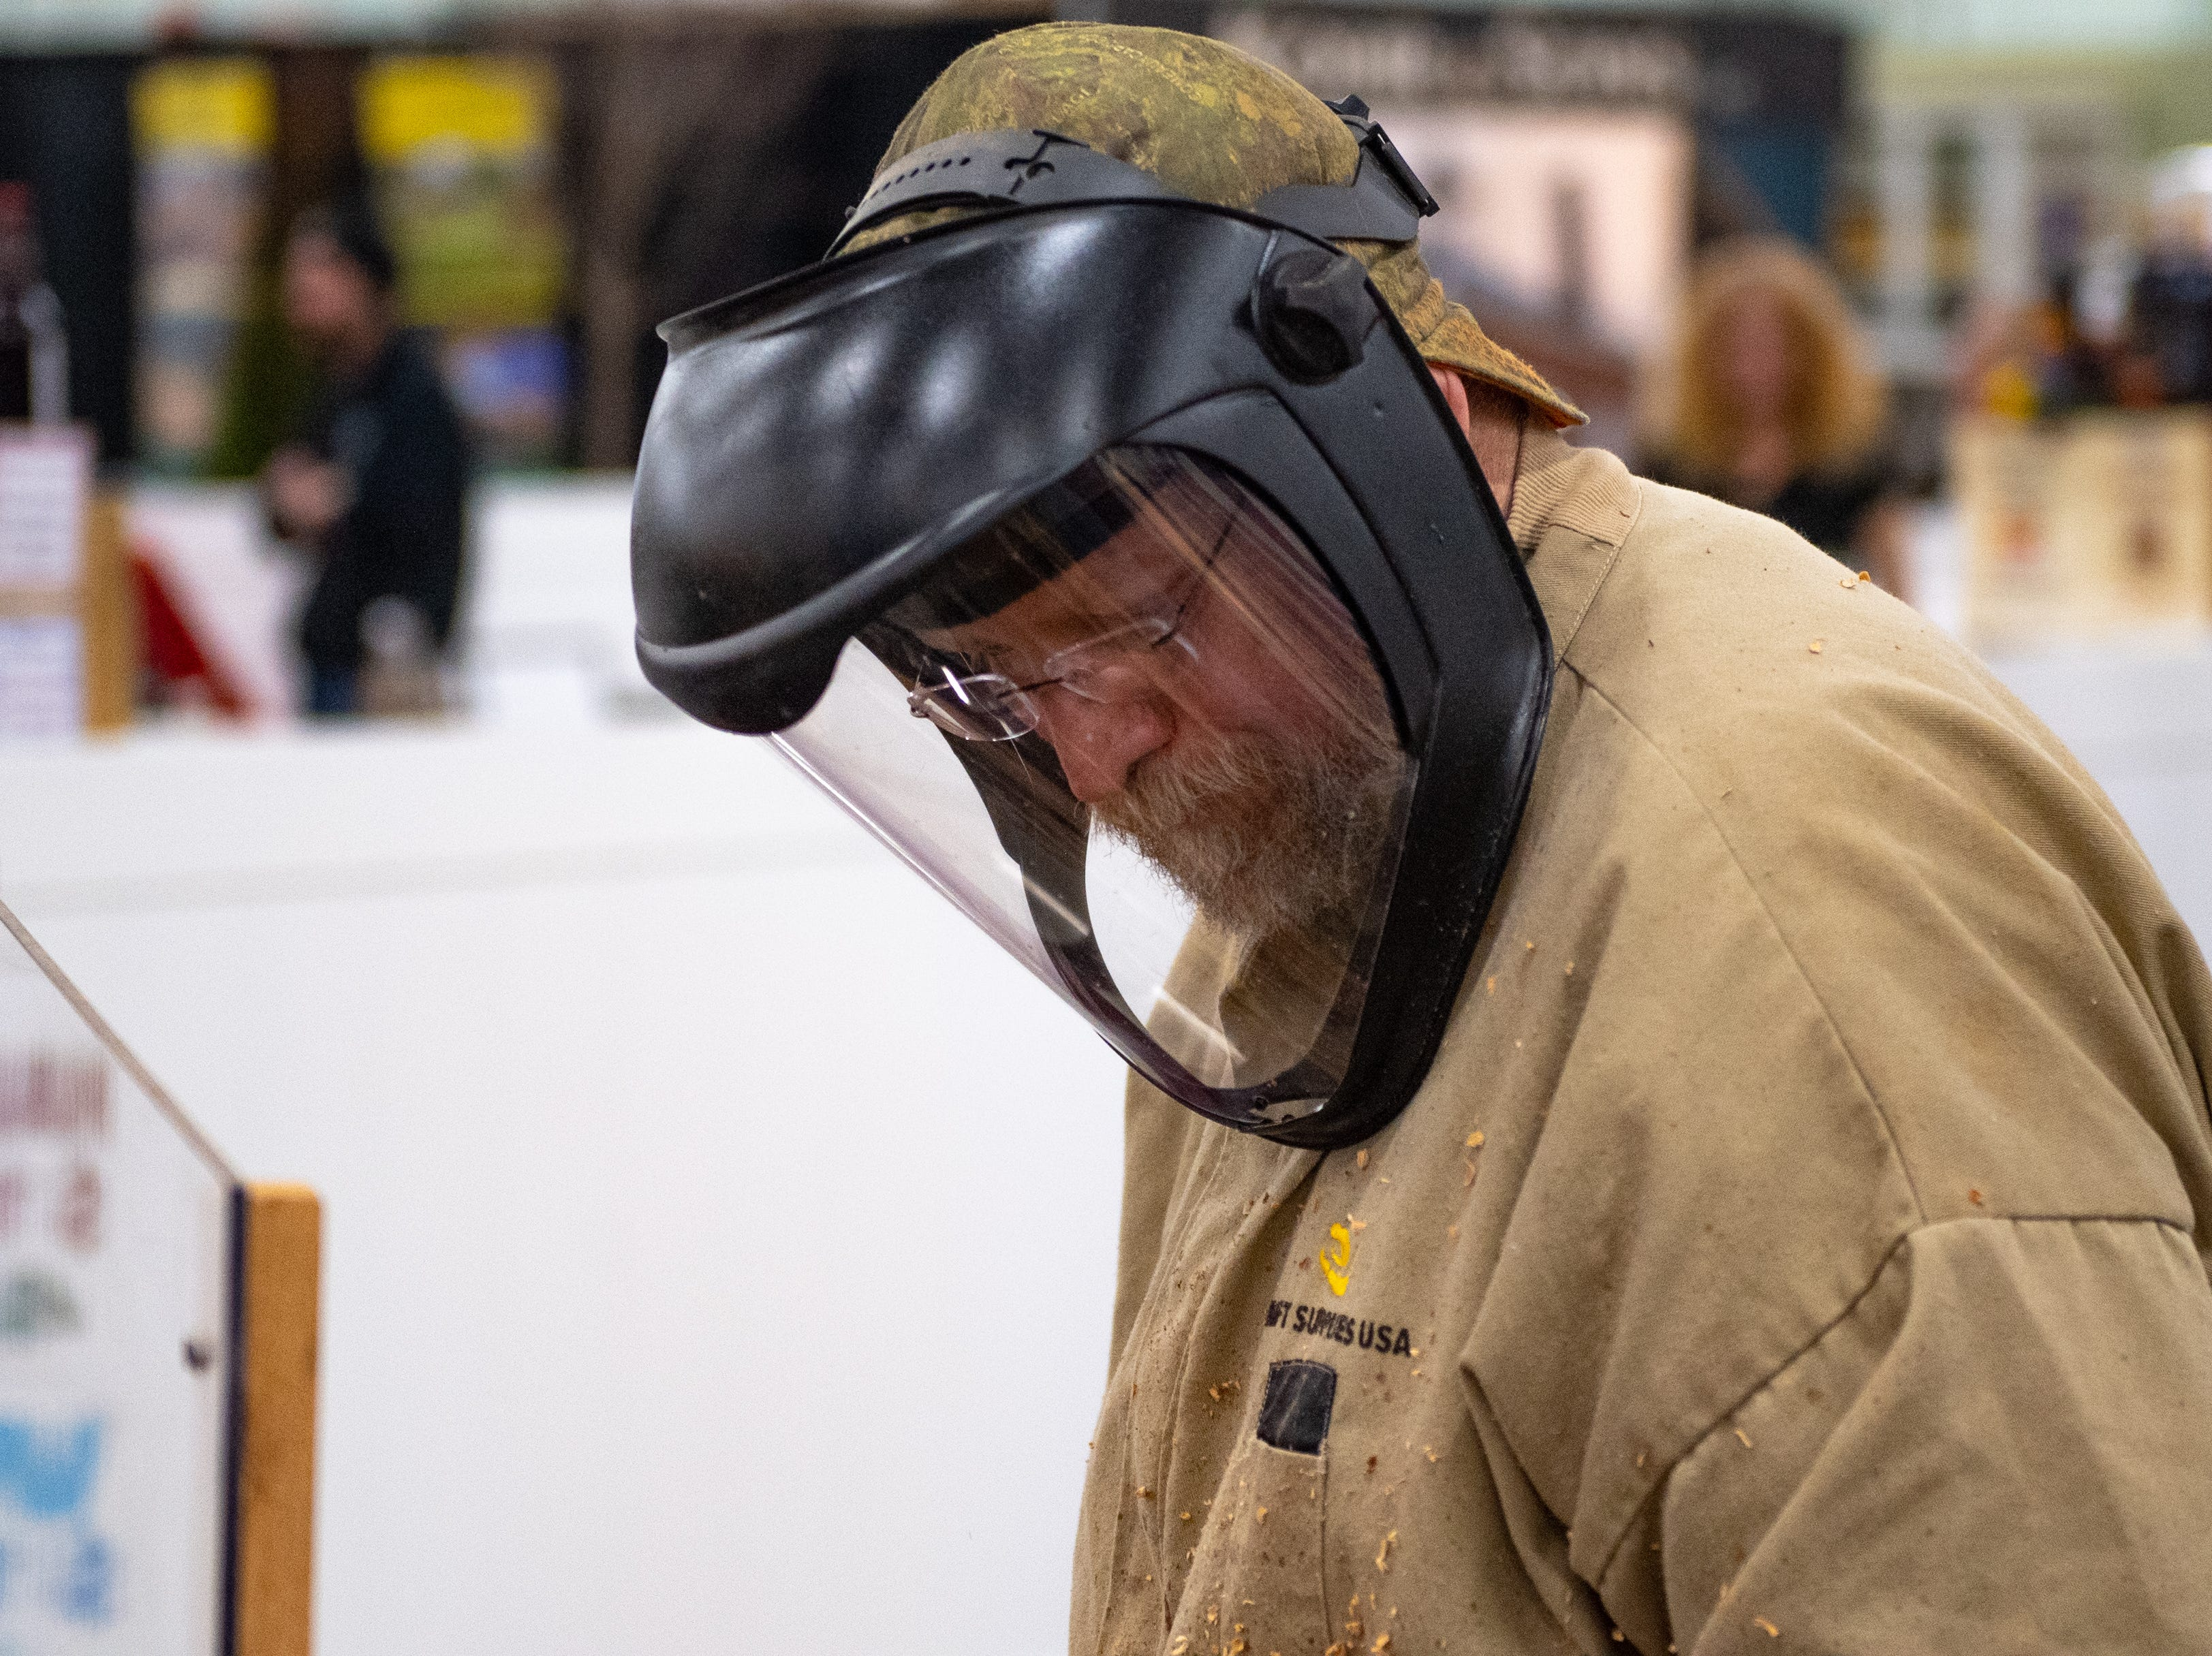 Those handling the wood have to wear protective gear  at the 2019 Home & Garden Show, February 8, 2019.